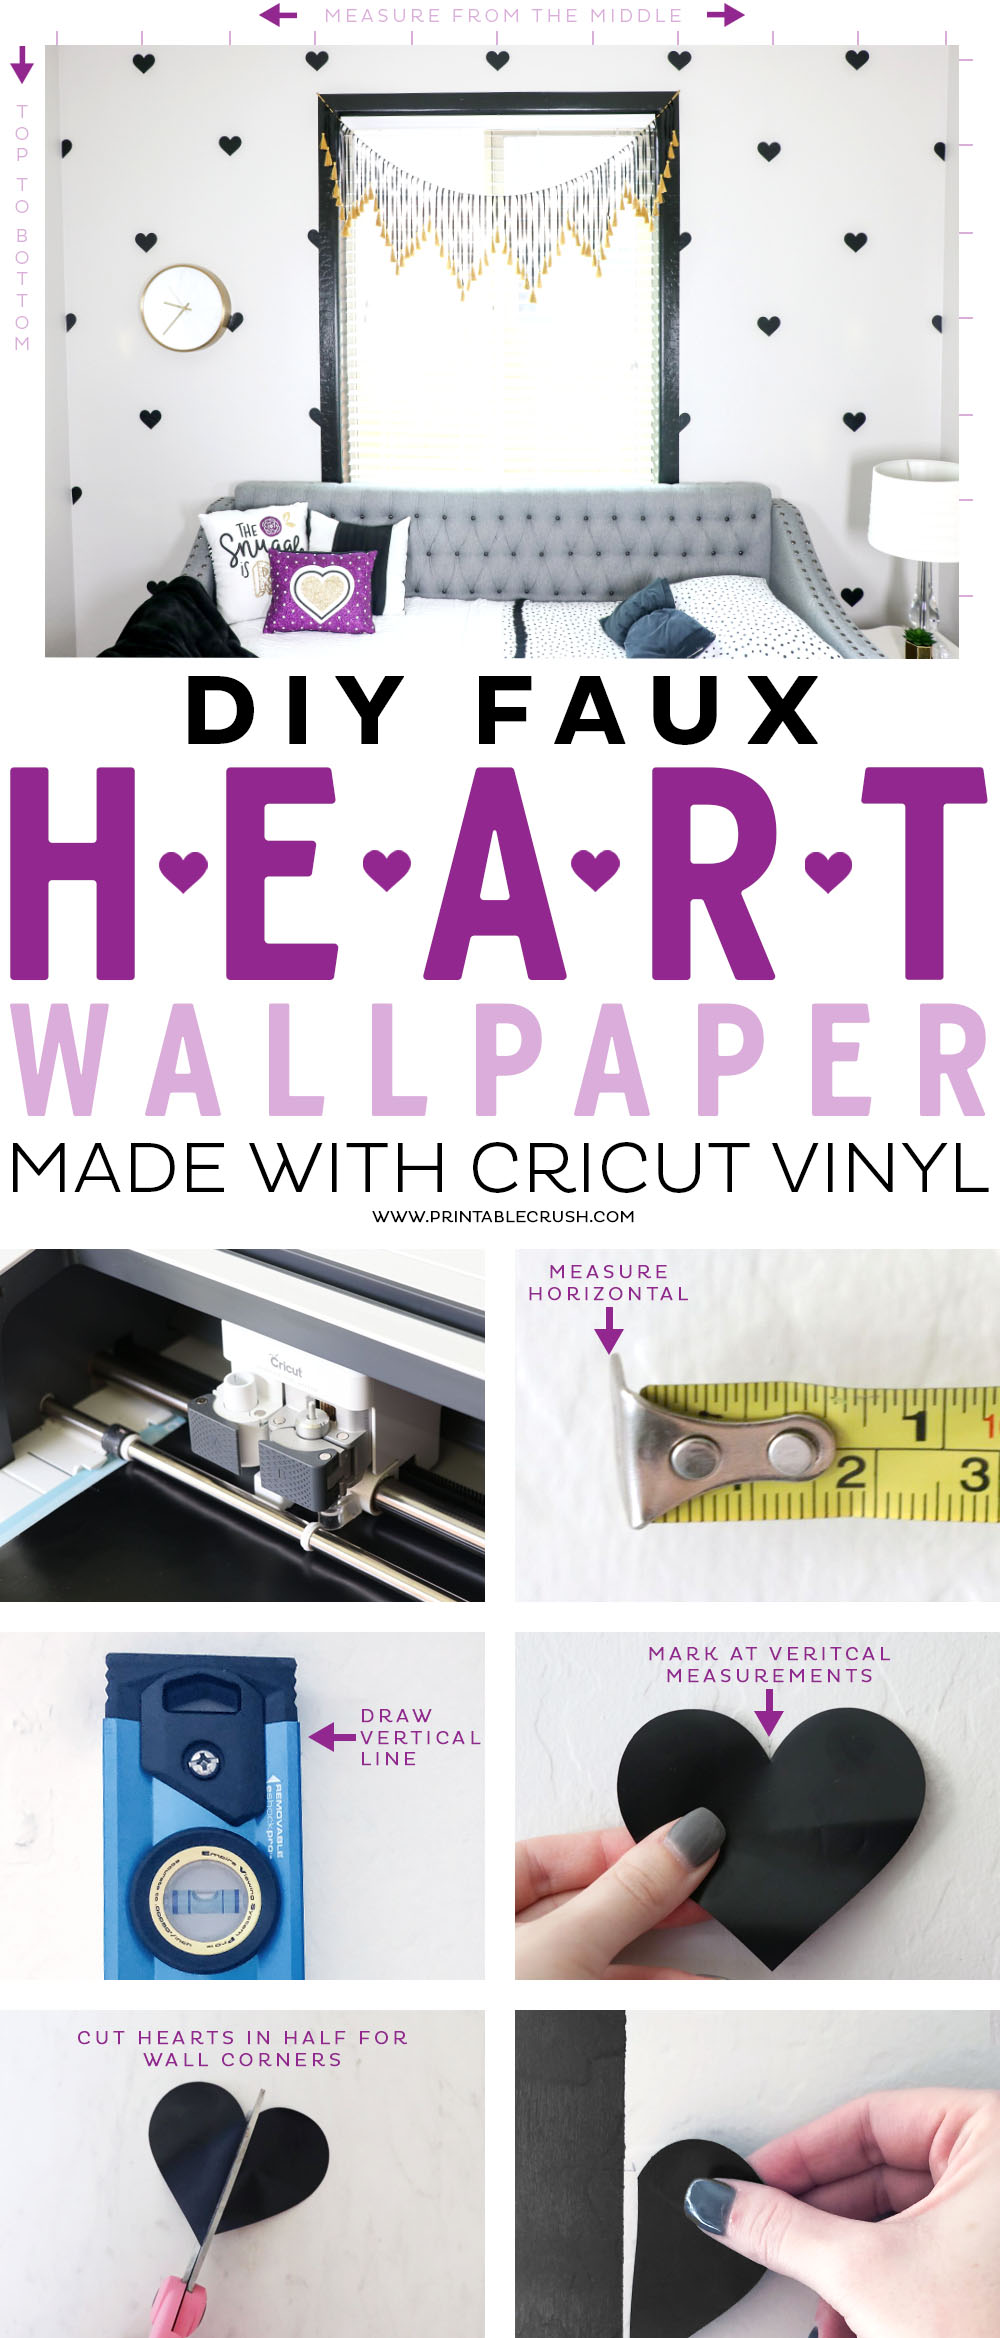 Make a fun and EASY statement wall with this DIY Faux Heart Wallpaper. It's made with Cricut vinyl and it's easier and more inexpensive than real wallpaper! #cricut #cricutvinyl #cricutmade #cricuttutorial #sayitwithcricut via @printablecrush